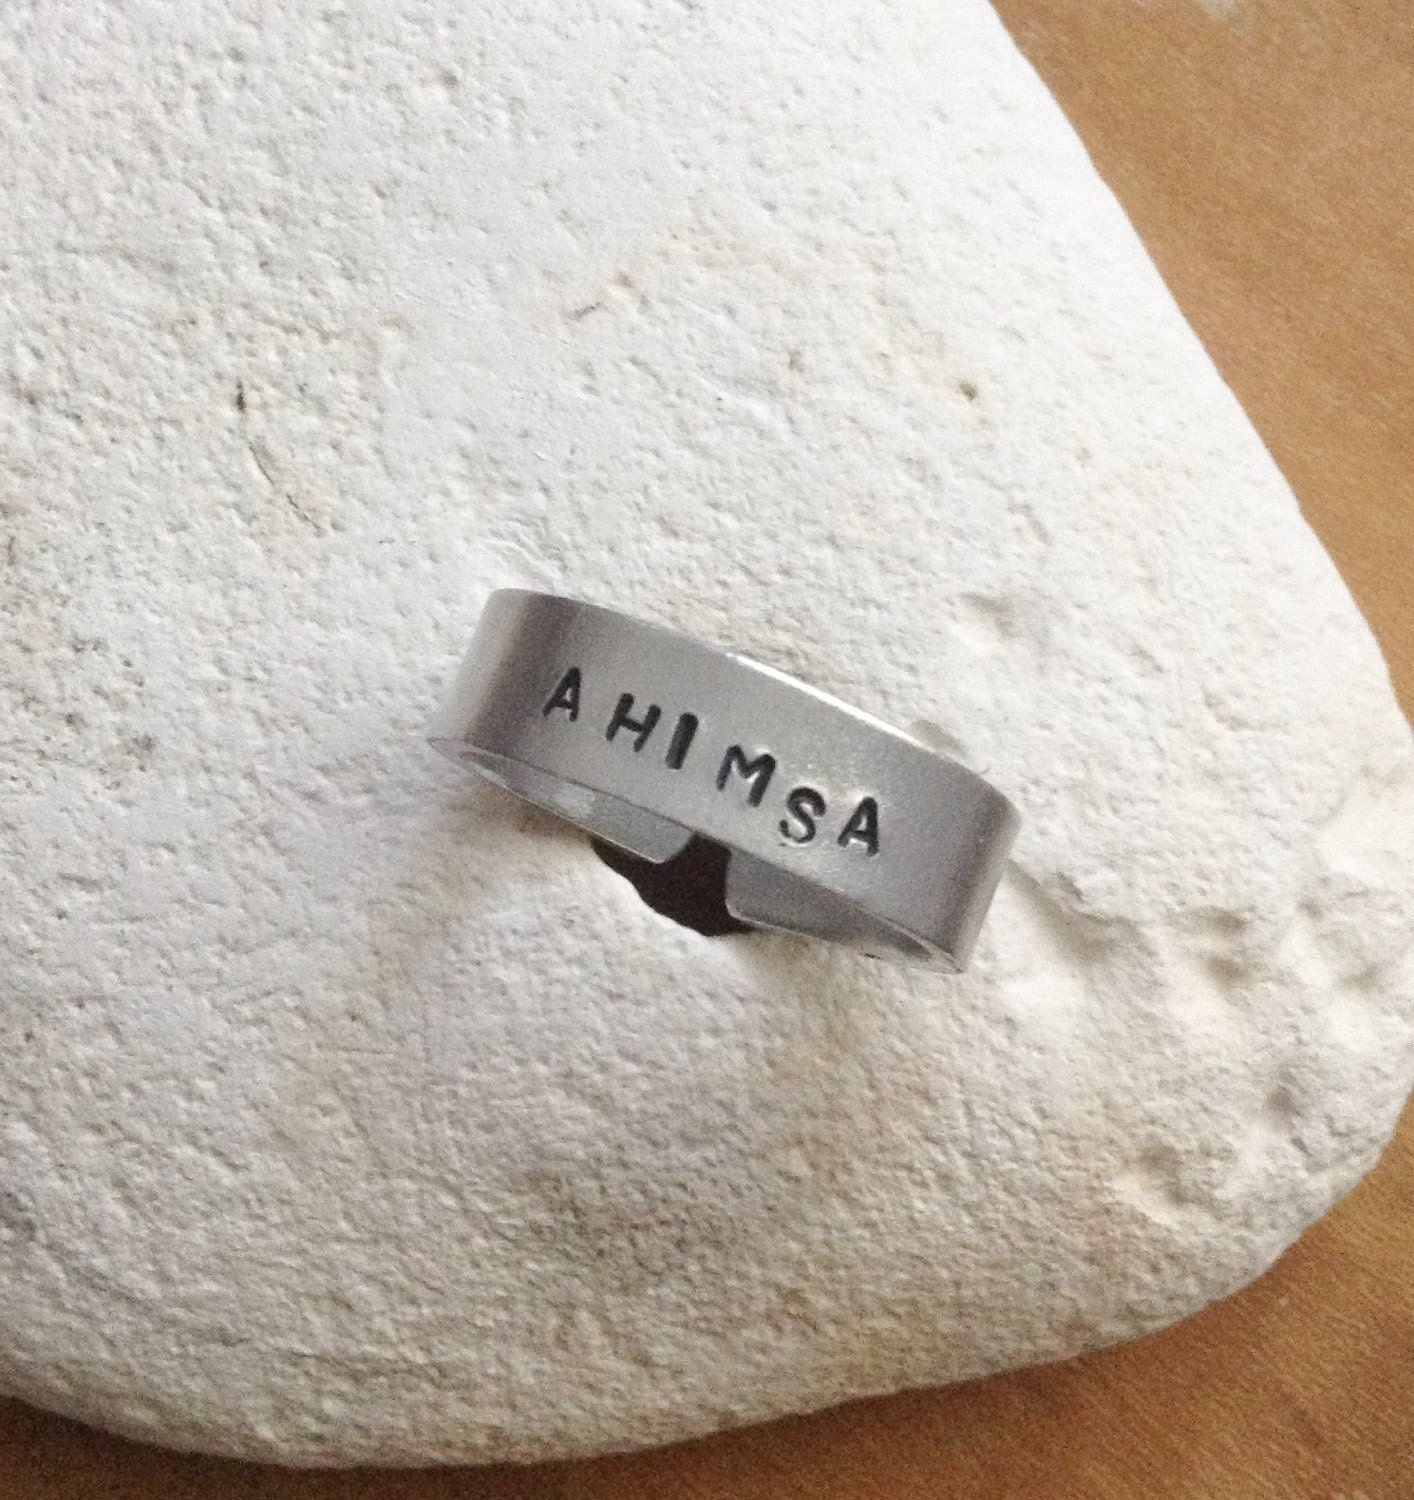 Ahimsa sanskrit vegan ring - handstamped cuff ring. Made to order and comes in small medium and large.